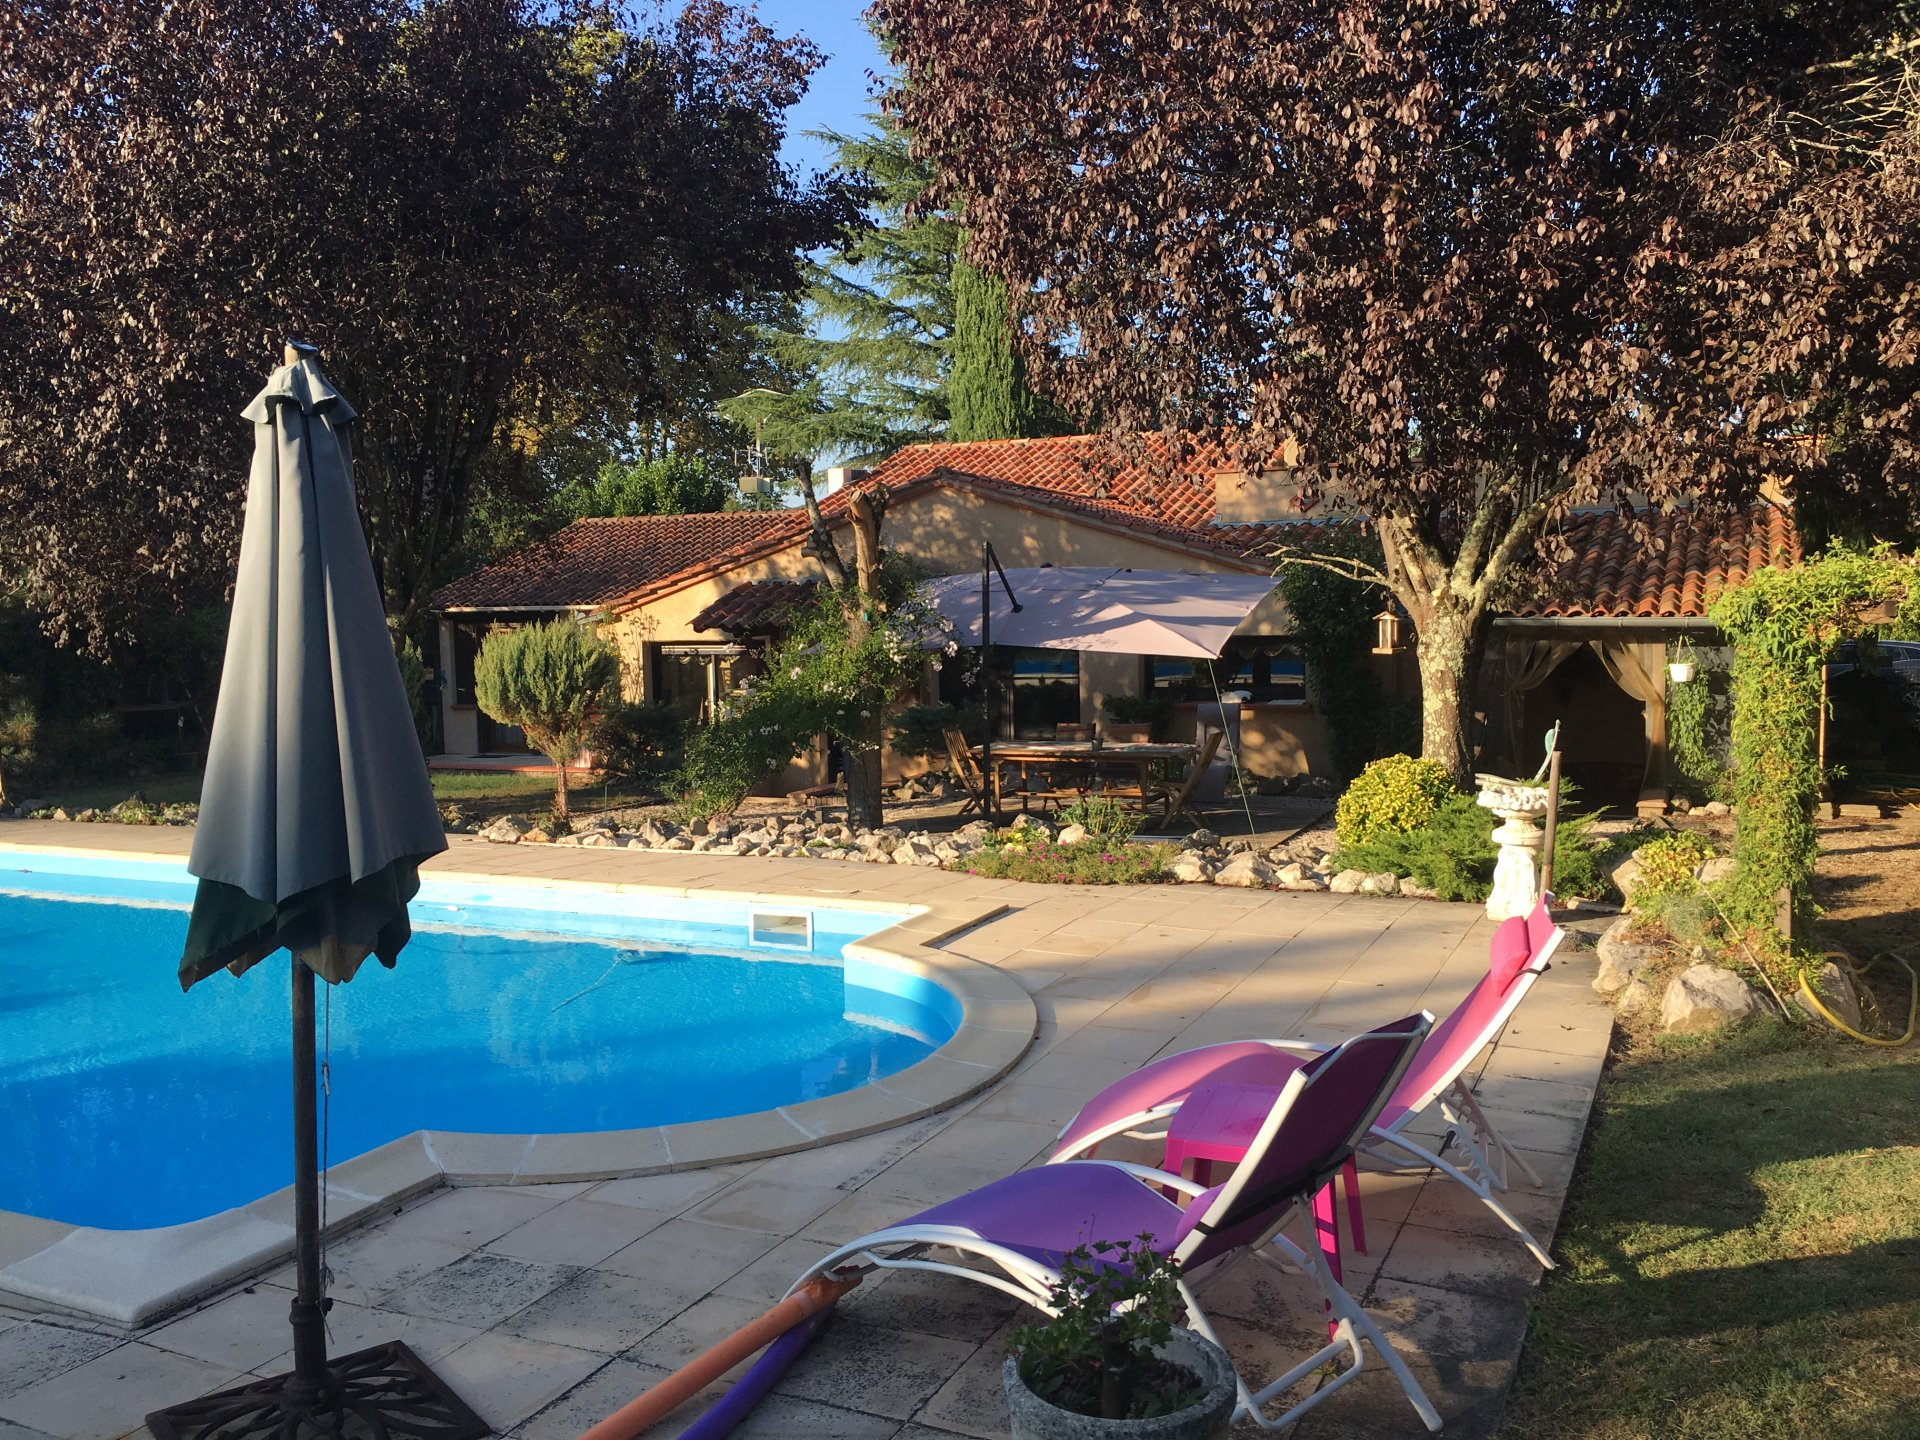 4 bedroomed house with pool and large garden